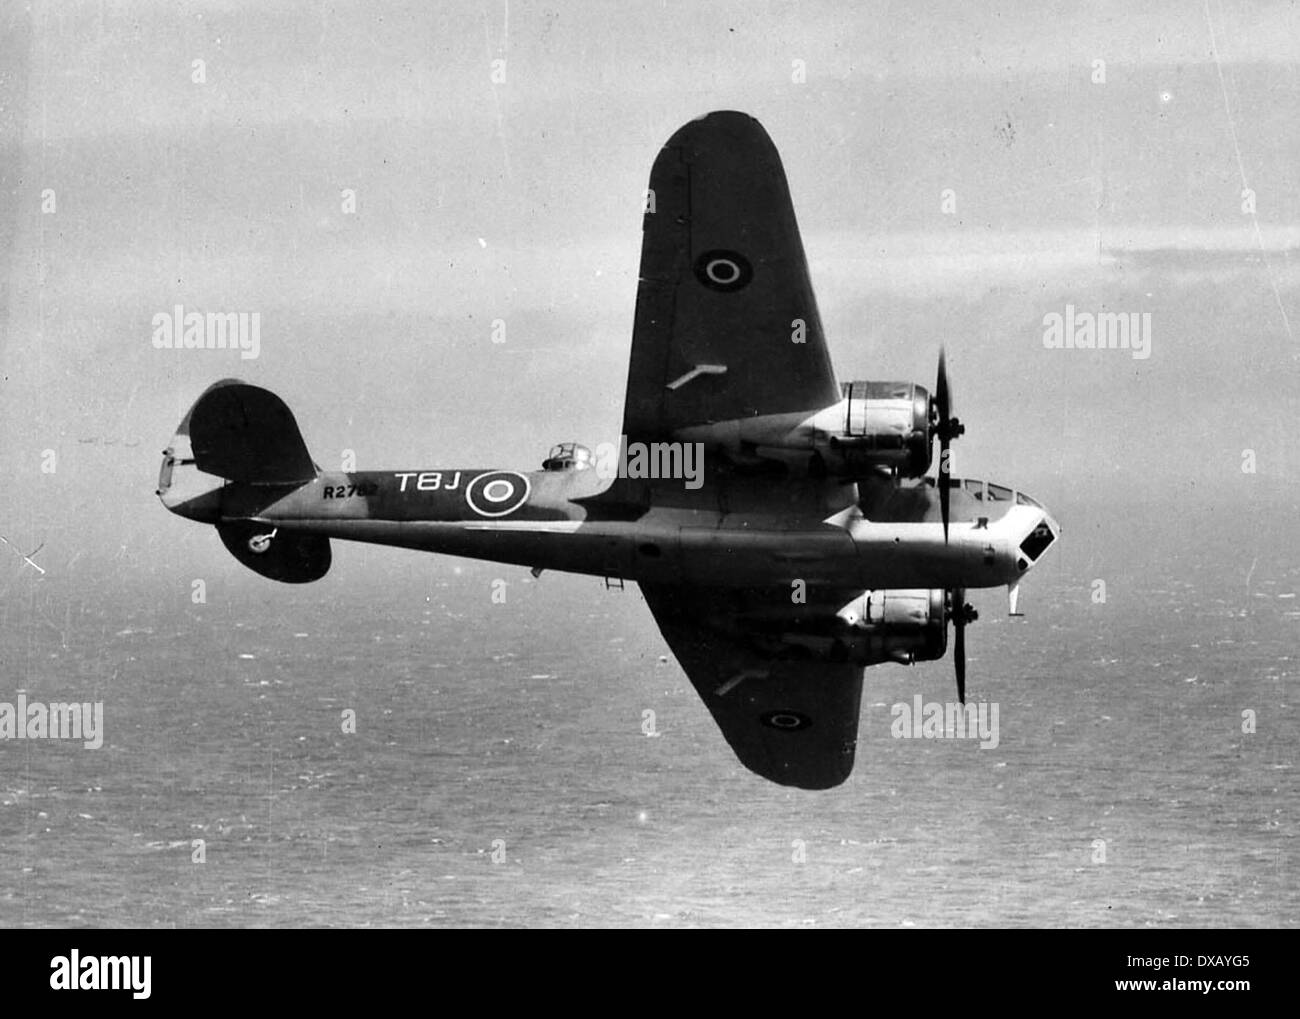 Blenheim fighter bomber ww2 - Stock Image